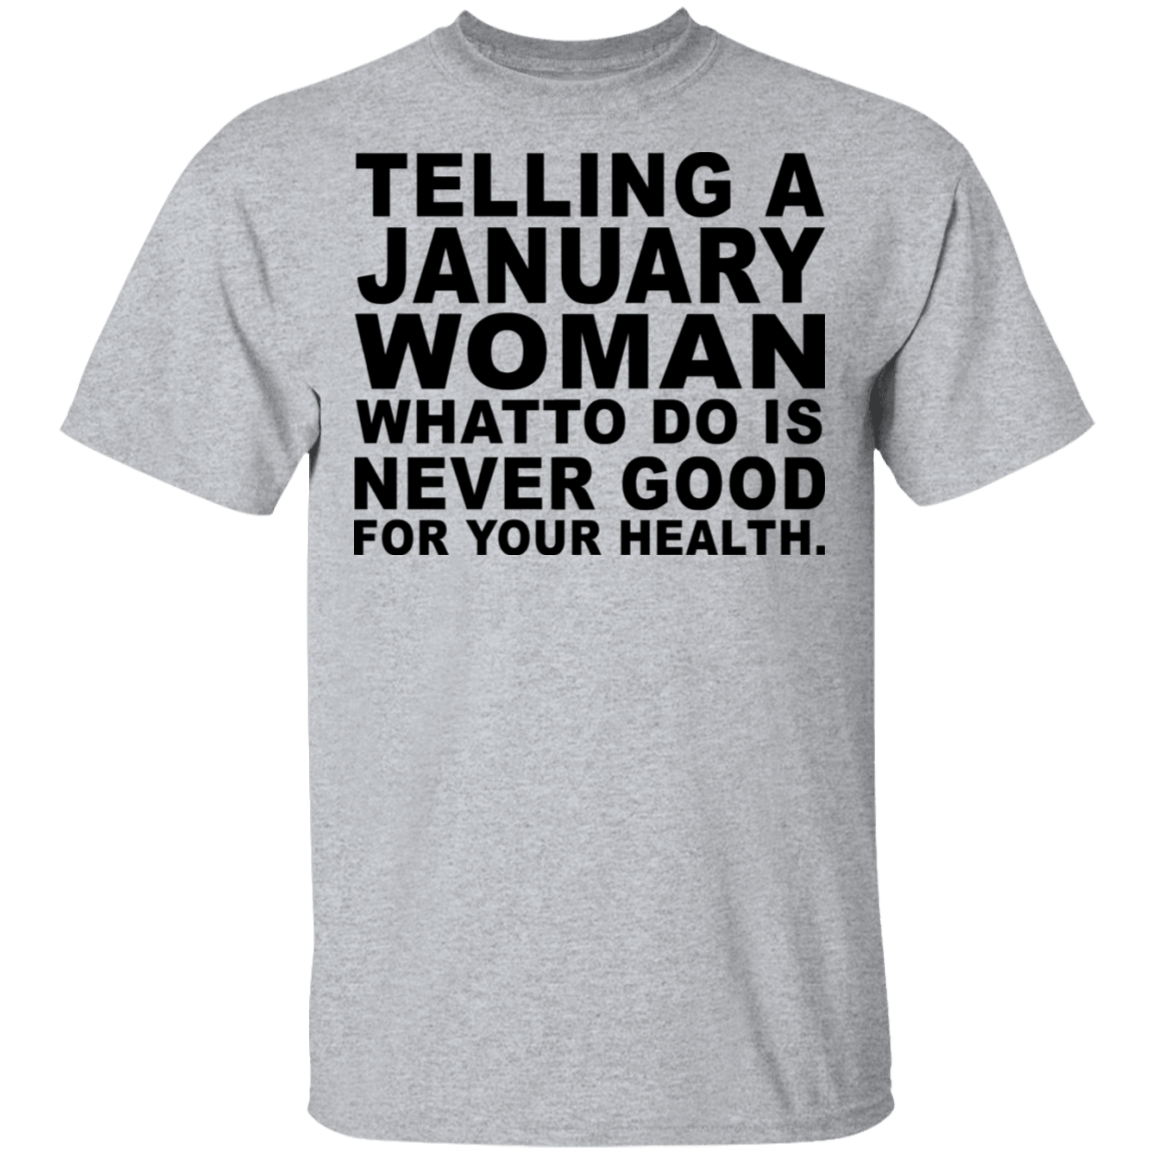 Telling A January Woman What To Do Is Never Good T-Shirts, Hoodies, Tank 22-115-79463227-254 - Tee Ript